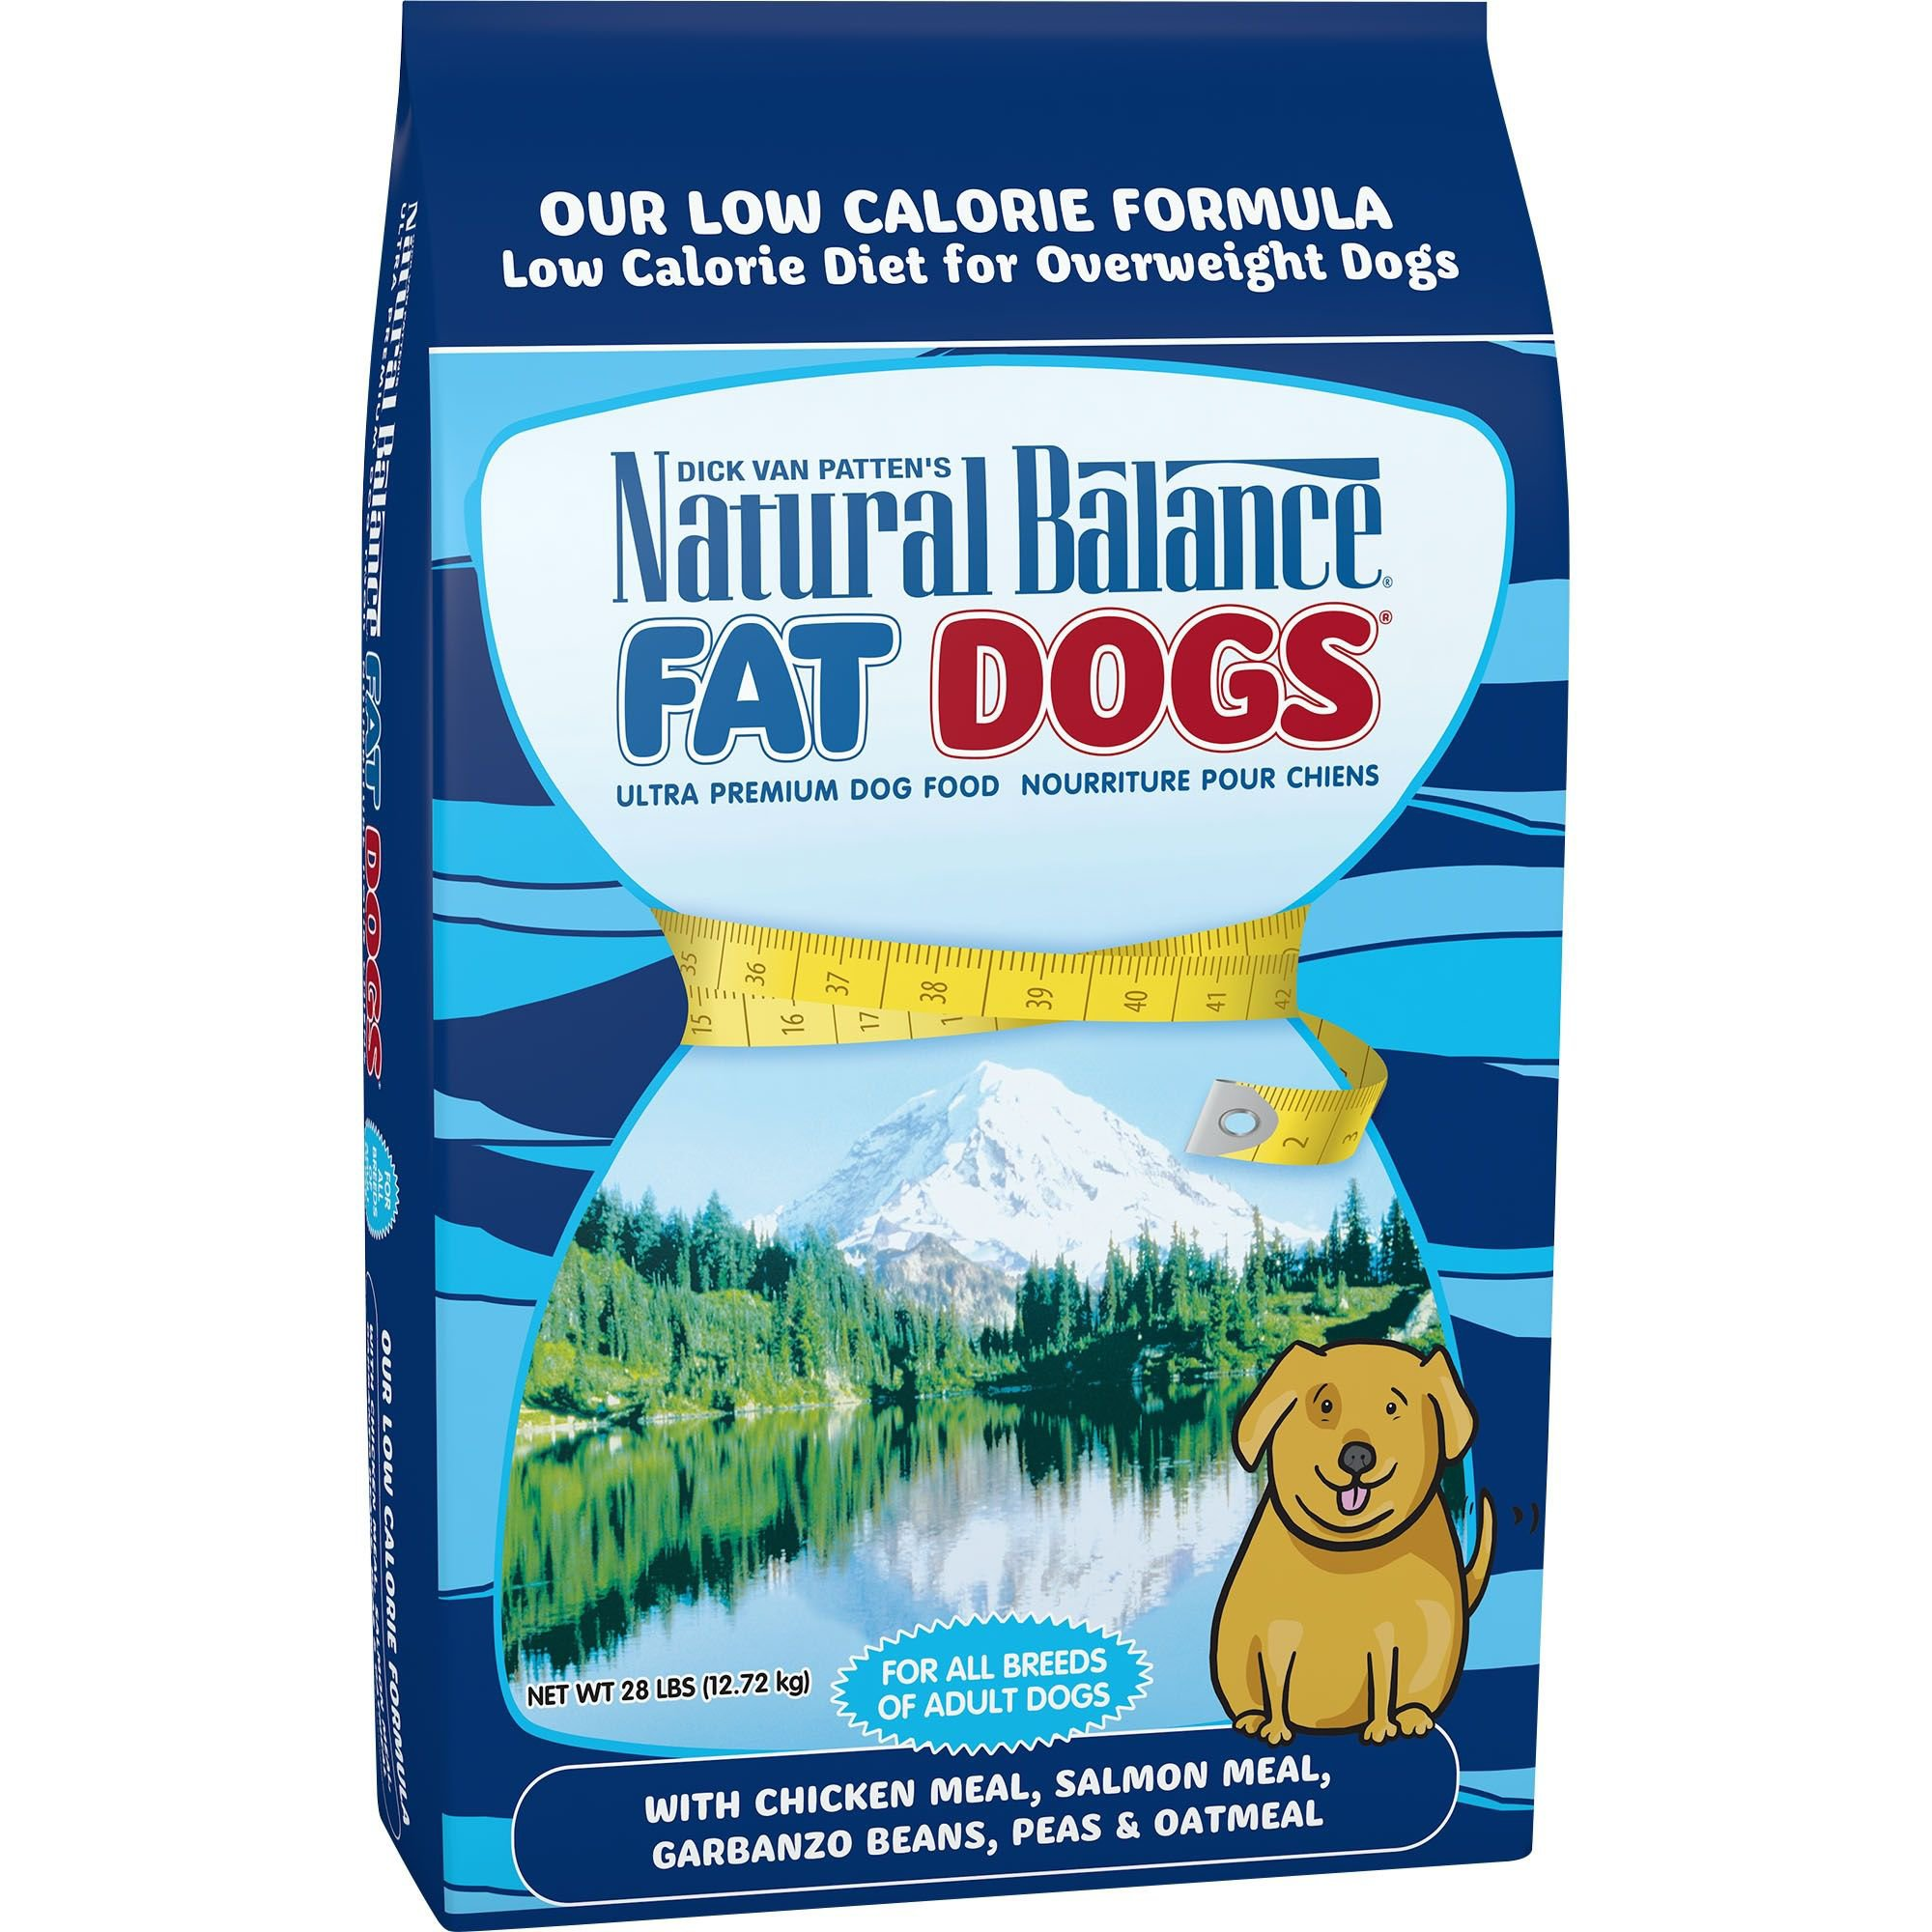 Natural Balance Fat Dogs Dog Food 28 lbs.